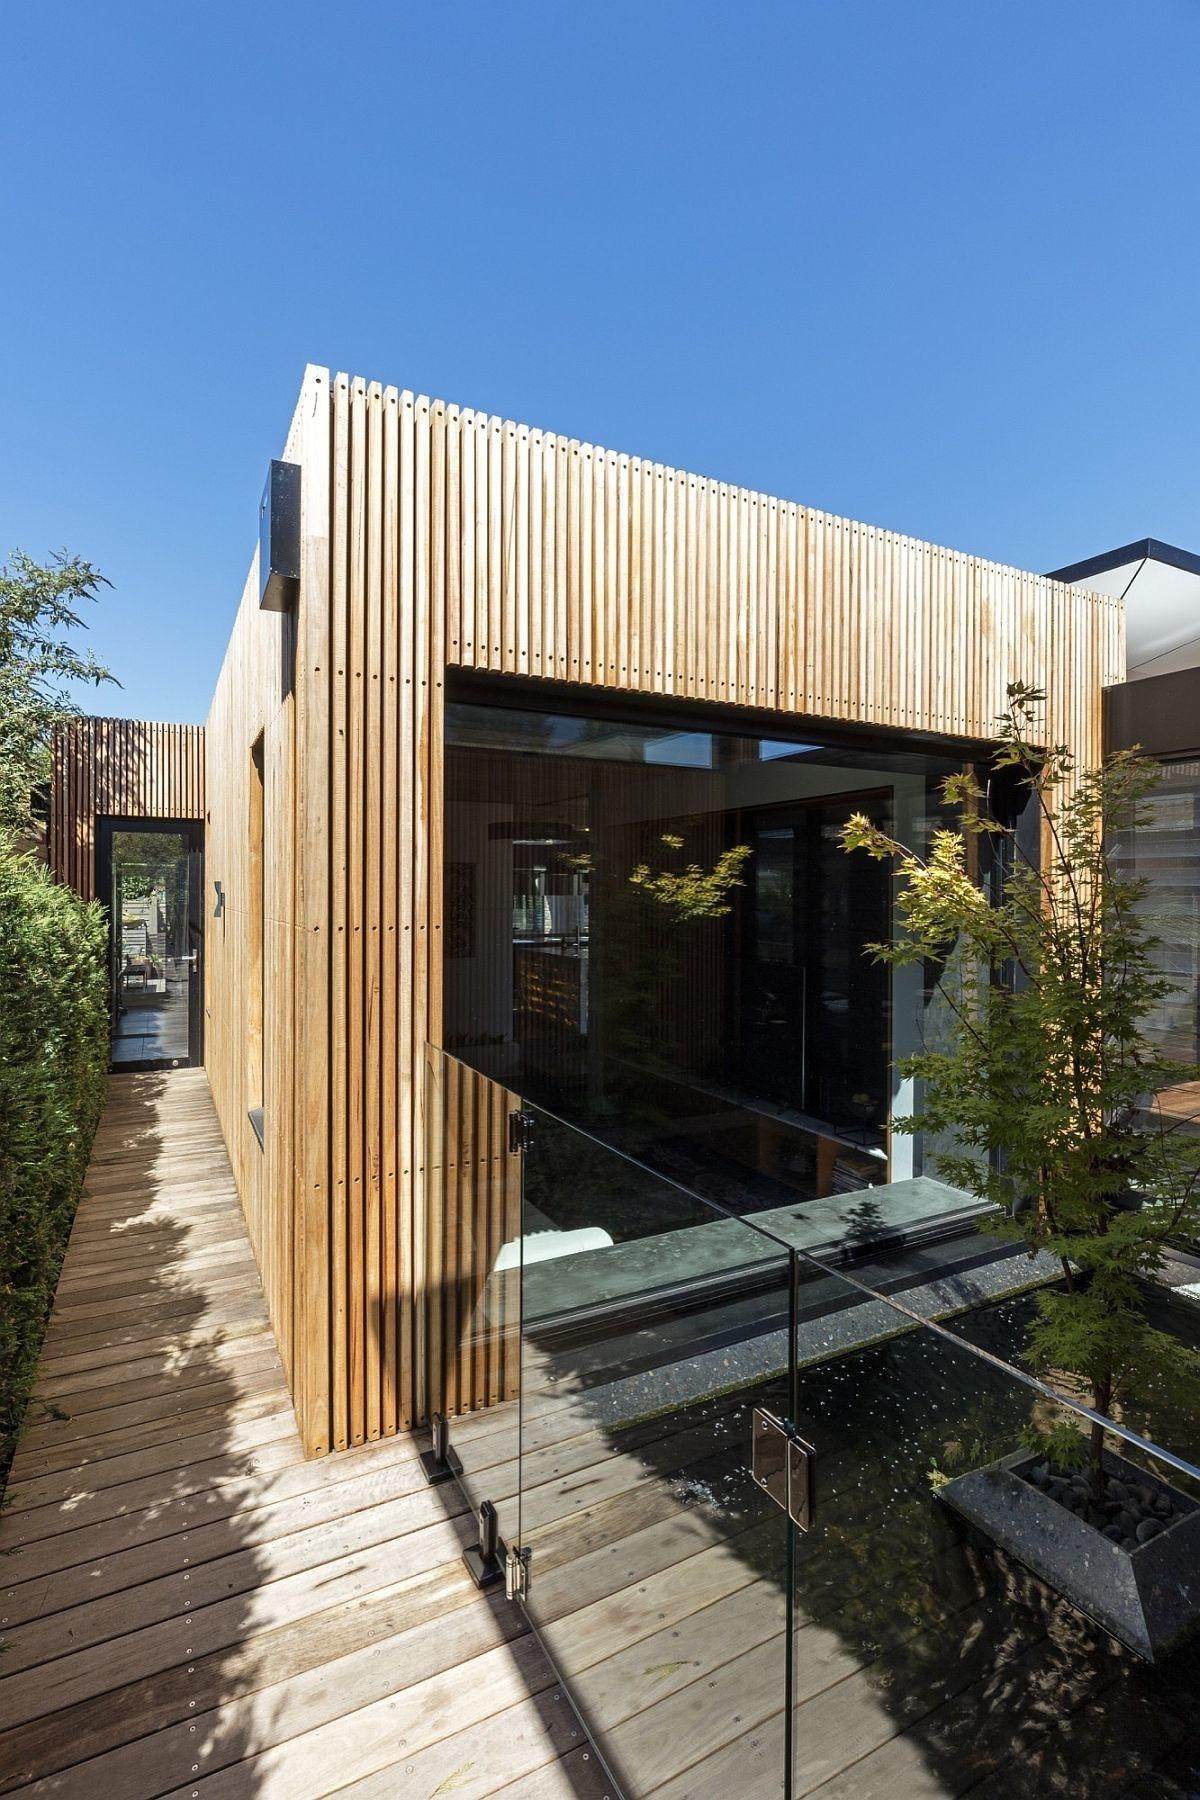 Smart Design Turns Heritage Cottage Into Eco